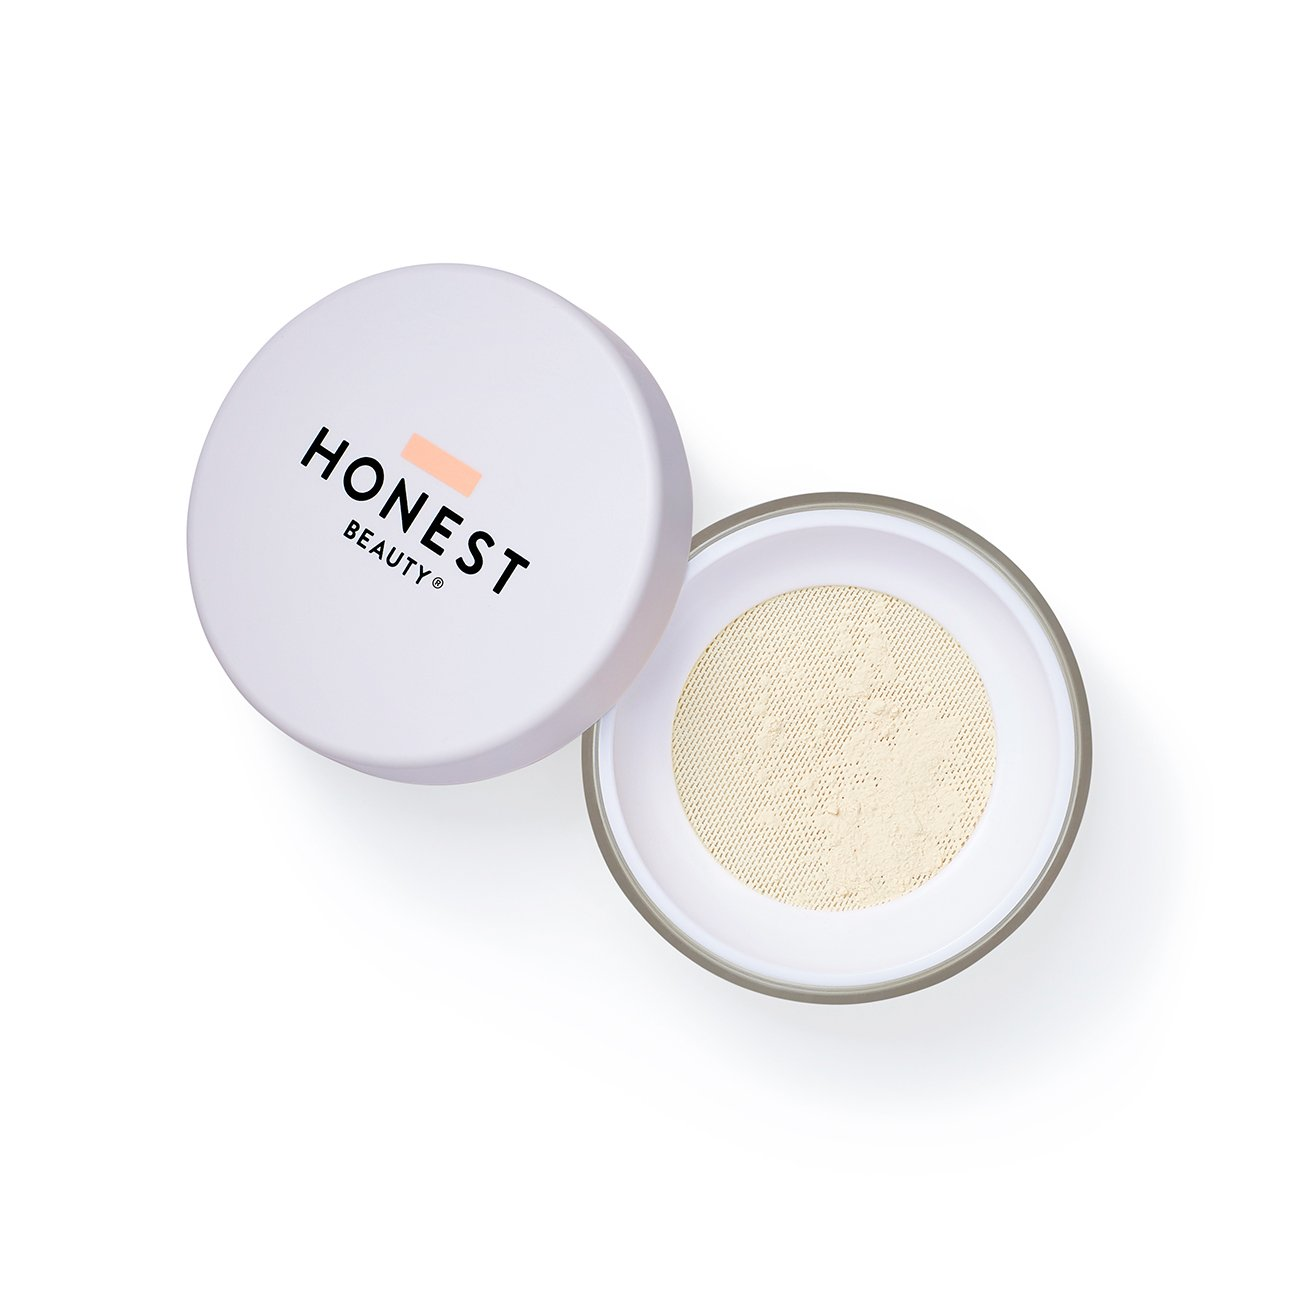 Honest Beauty Invisible Blurring Loose Powder Blur, Mattify